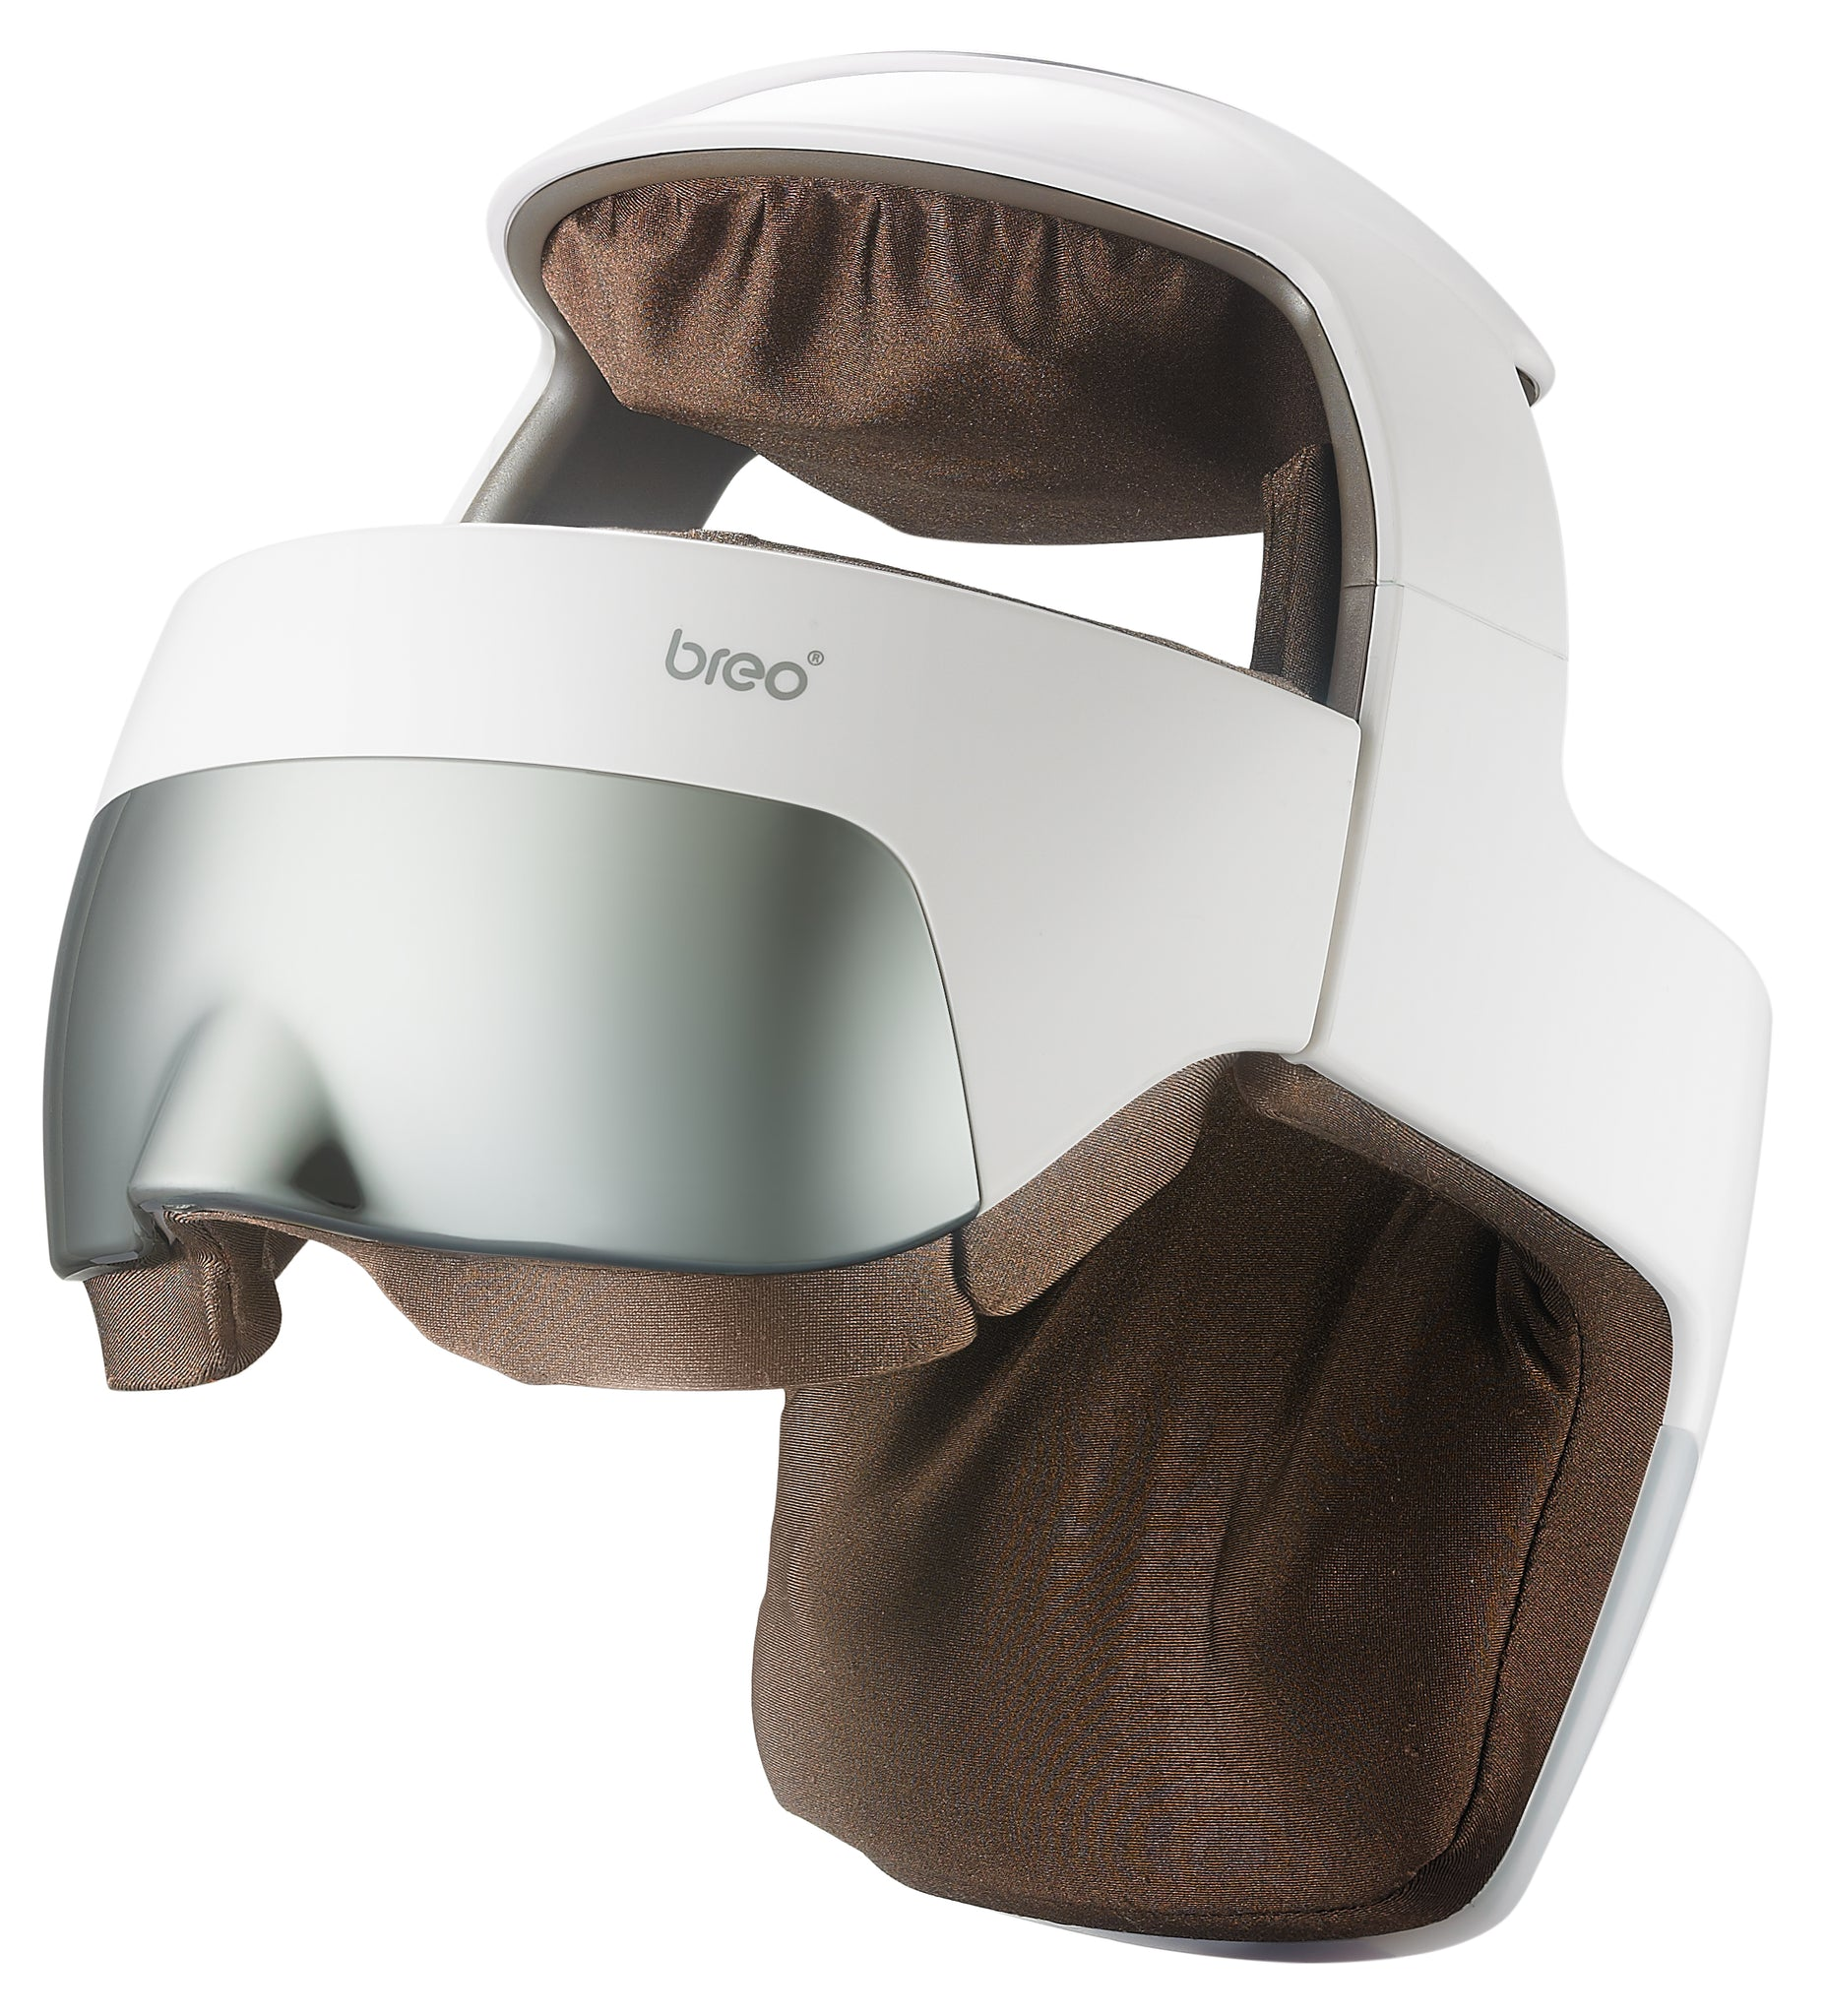 Breo iDream5 Eye & Head Massager - OBM Distribution, Inc.